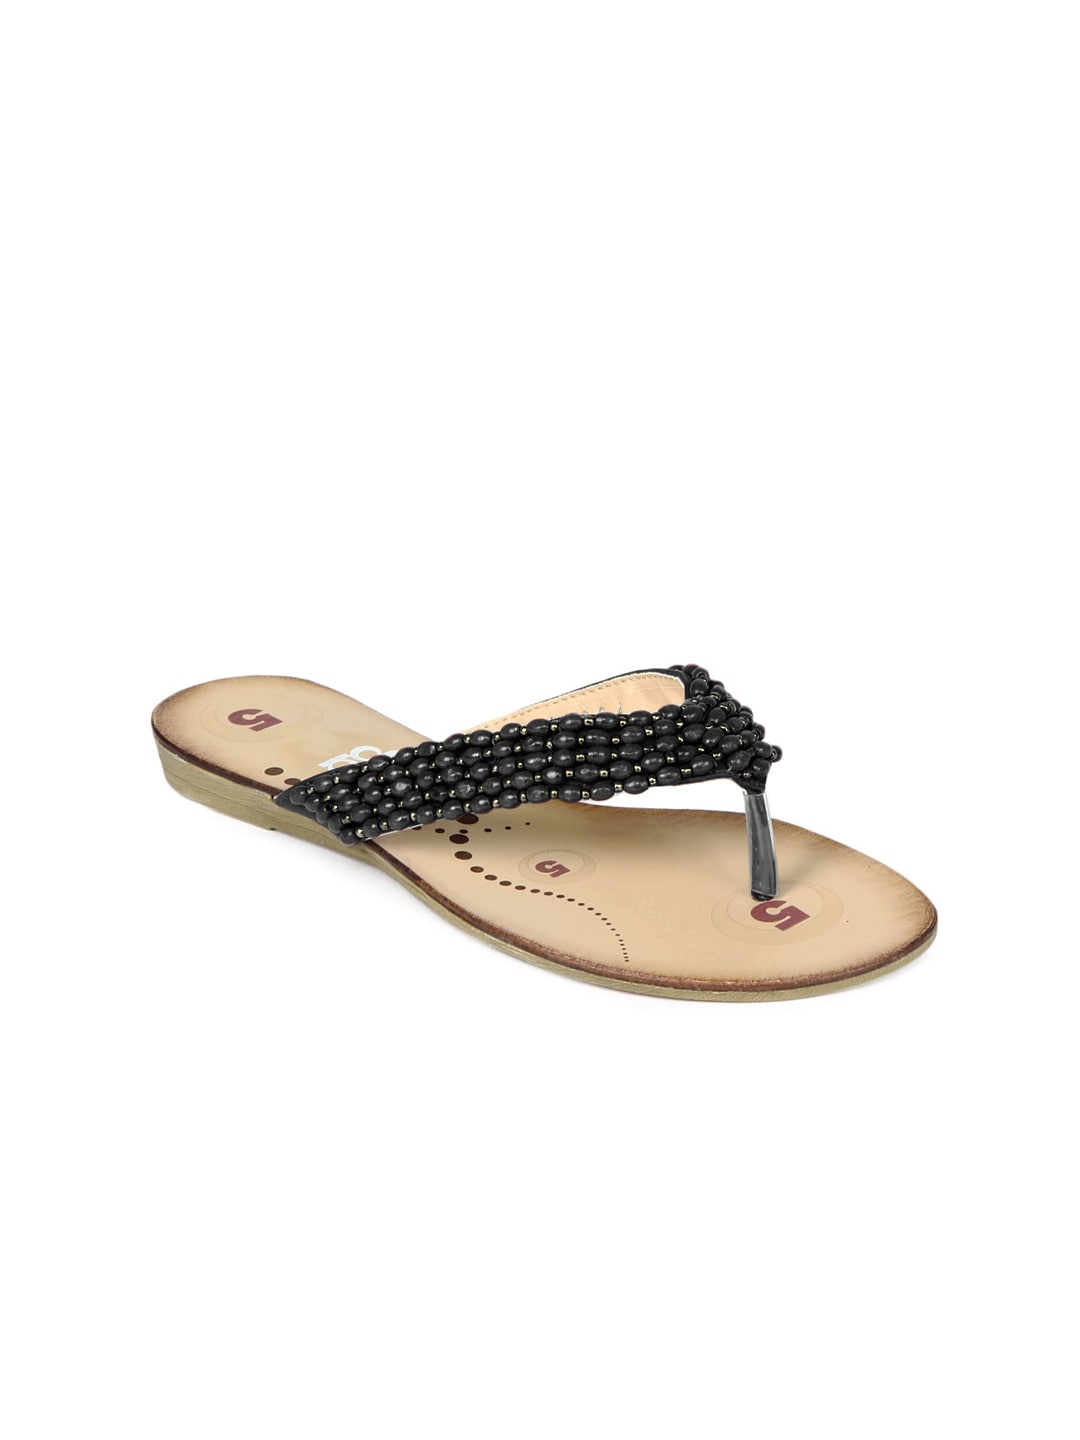 DressBerry Women Black Beaded Sandals